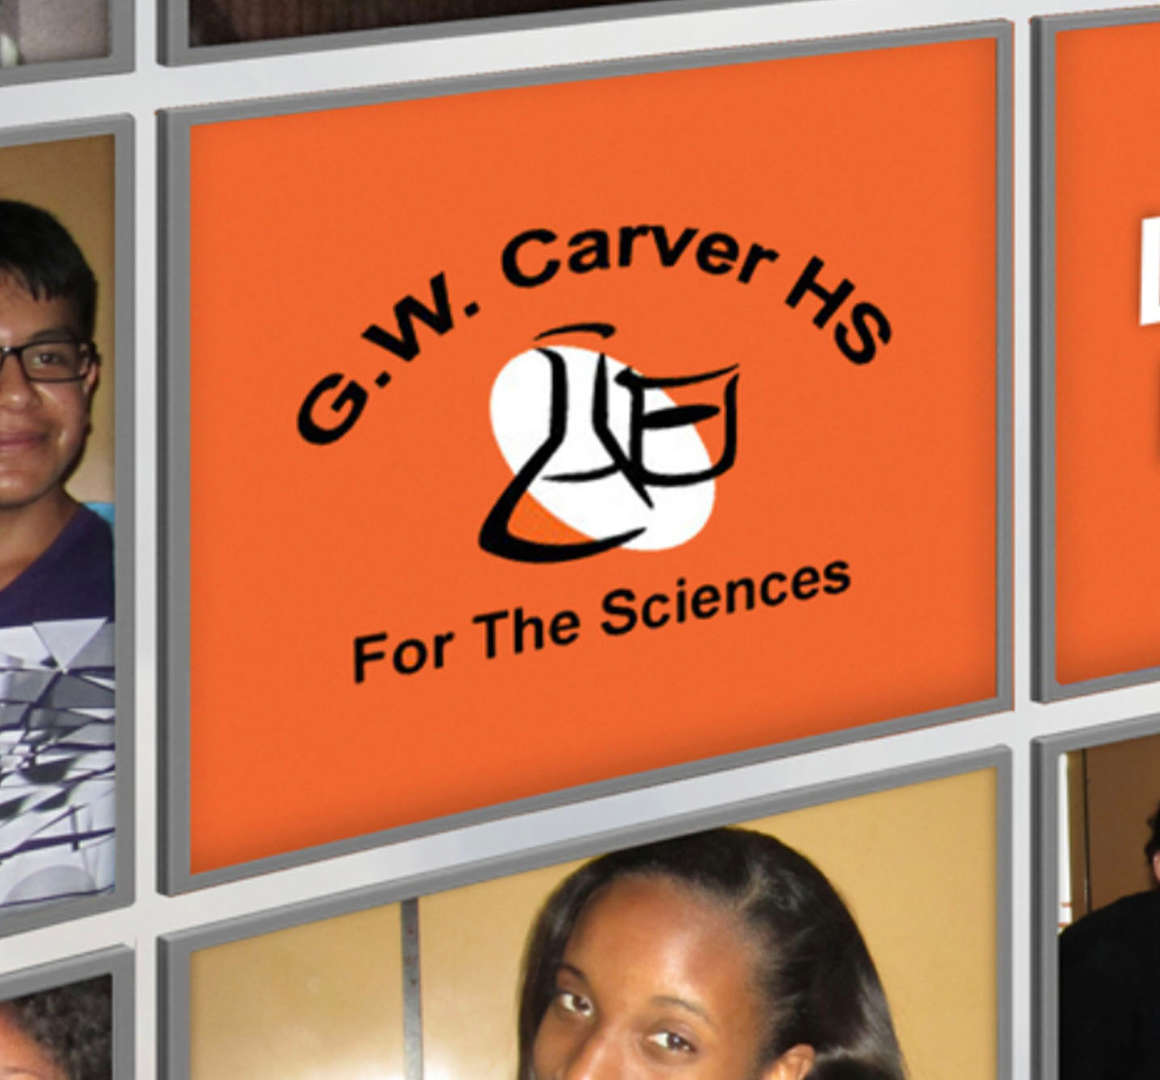 G.W. Carver HS For The Science logo and collage of images